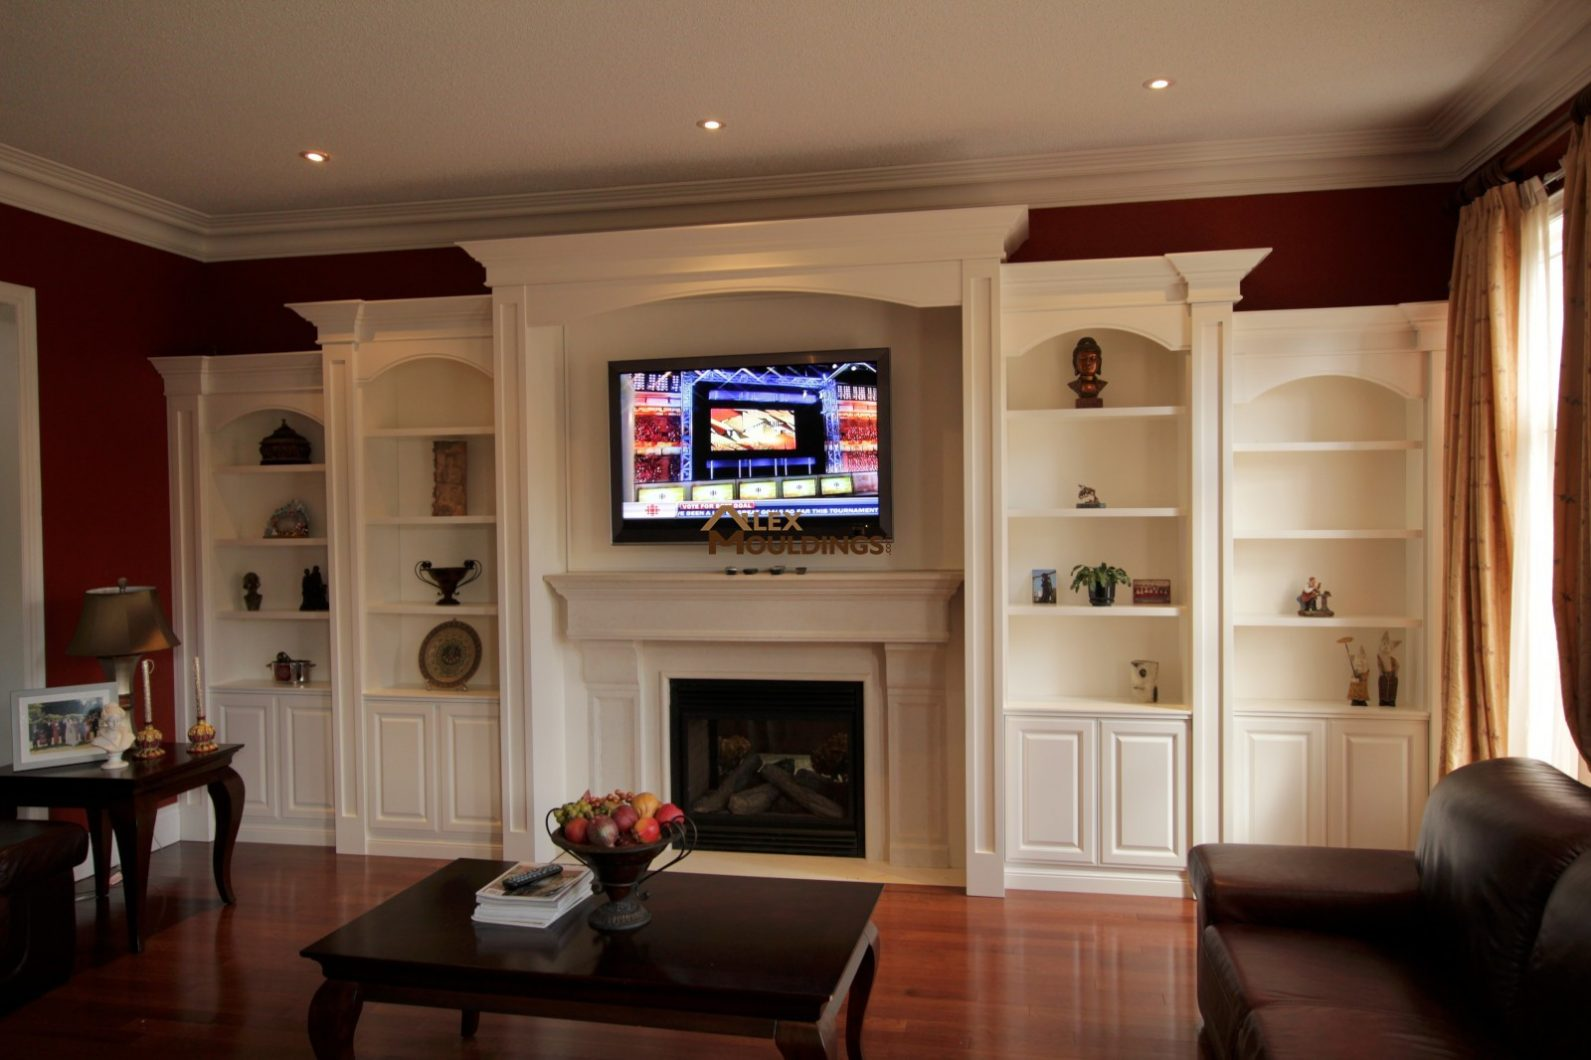 Wall Mounted Entertainment Unit Wall Units Custom Millwork Wainscot Paneling